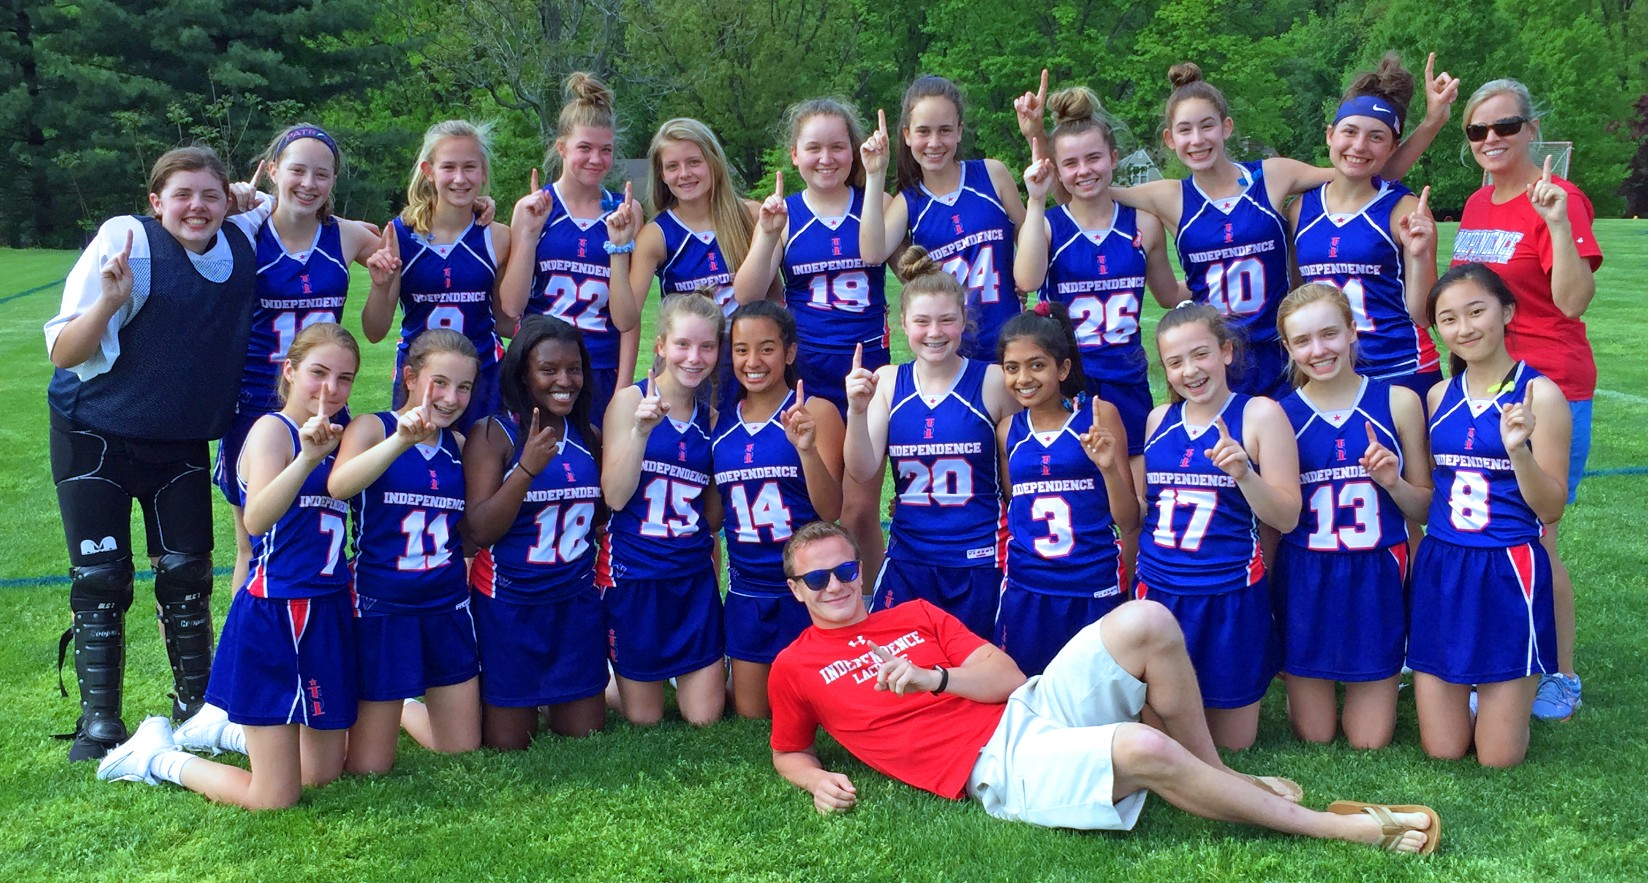 Girls' Lacrosse Undefeated for 2nd Time in 4 Years